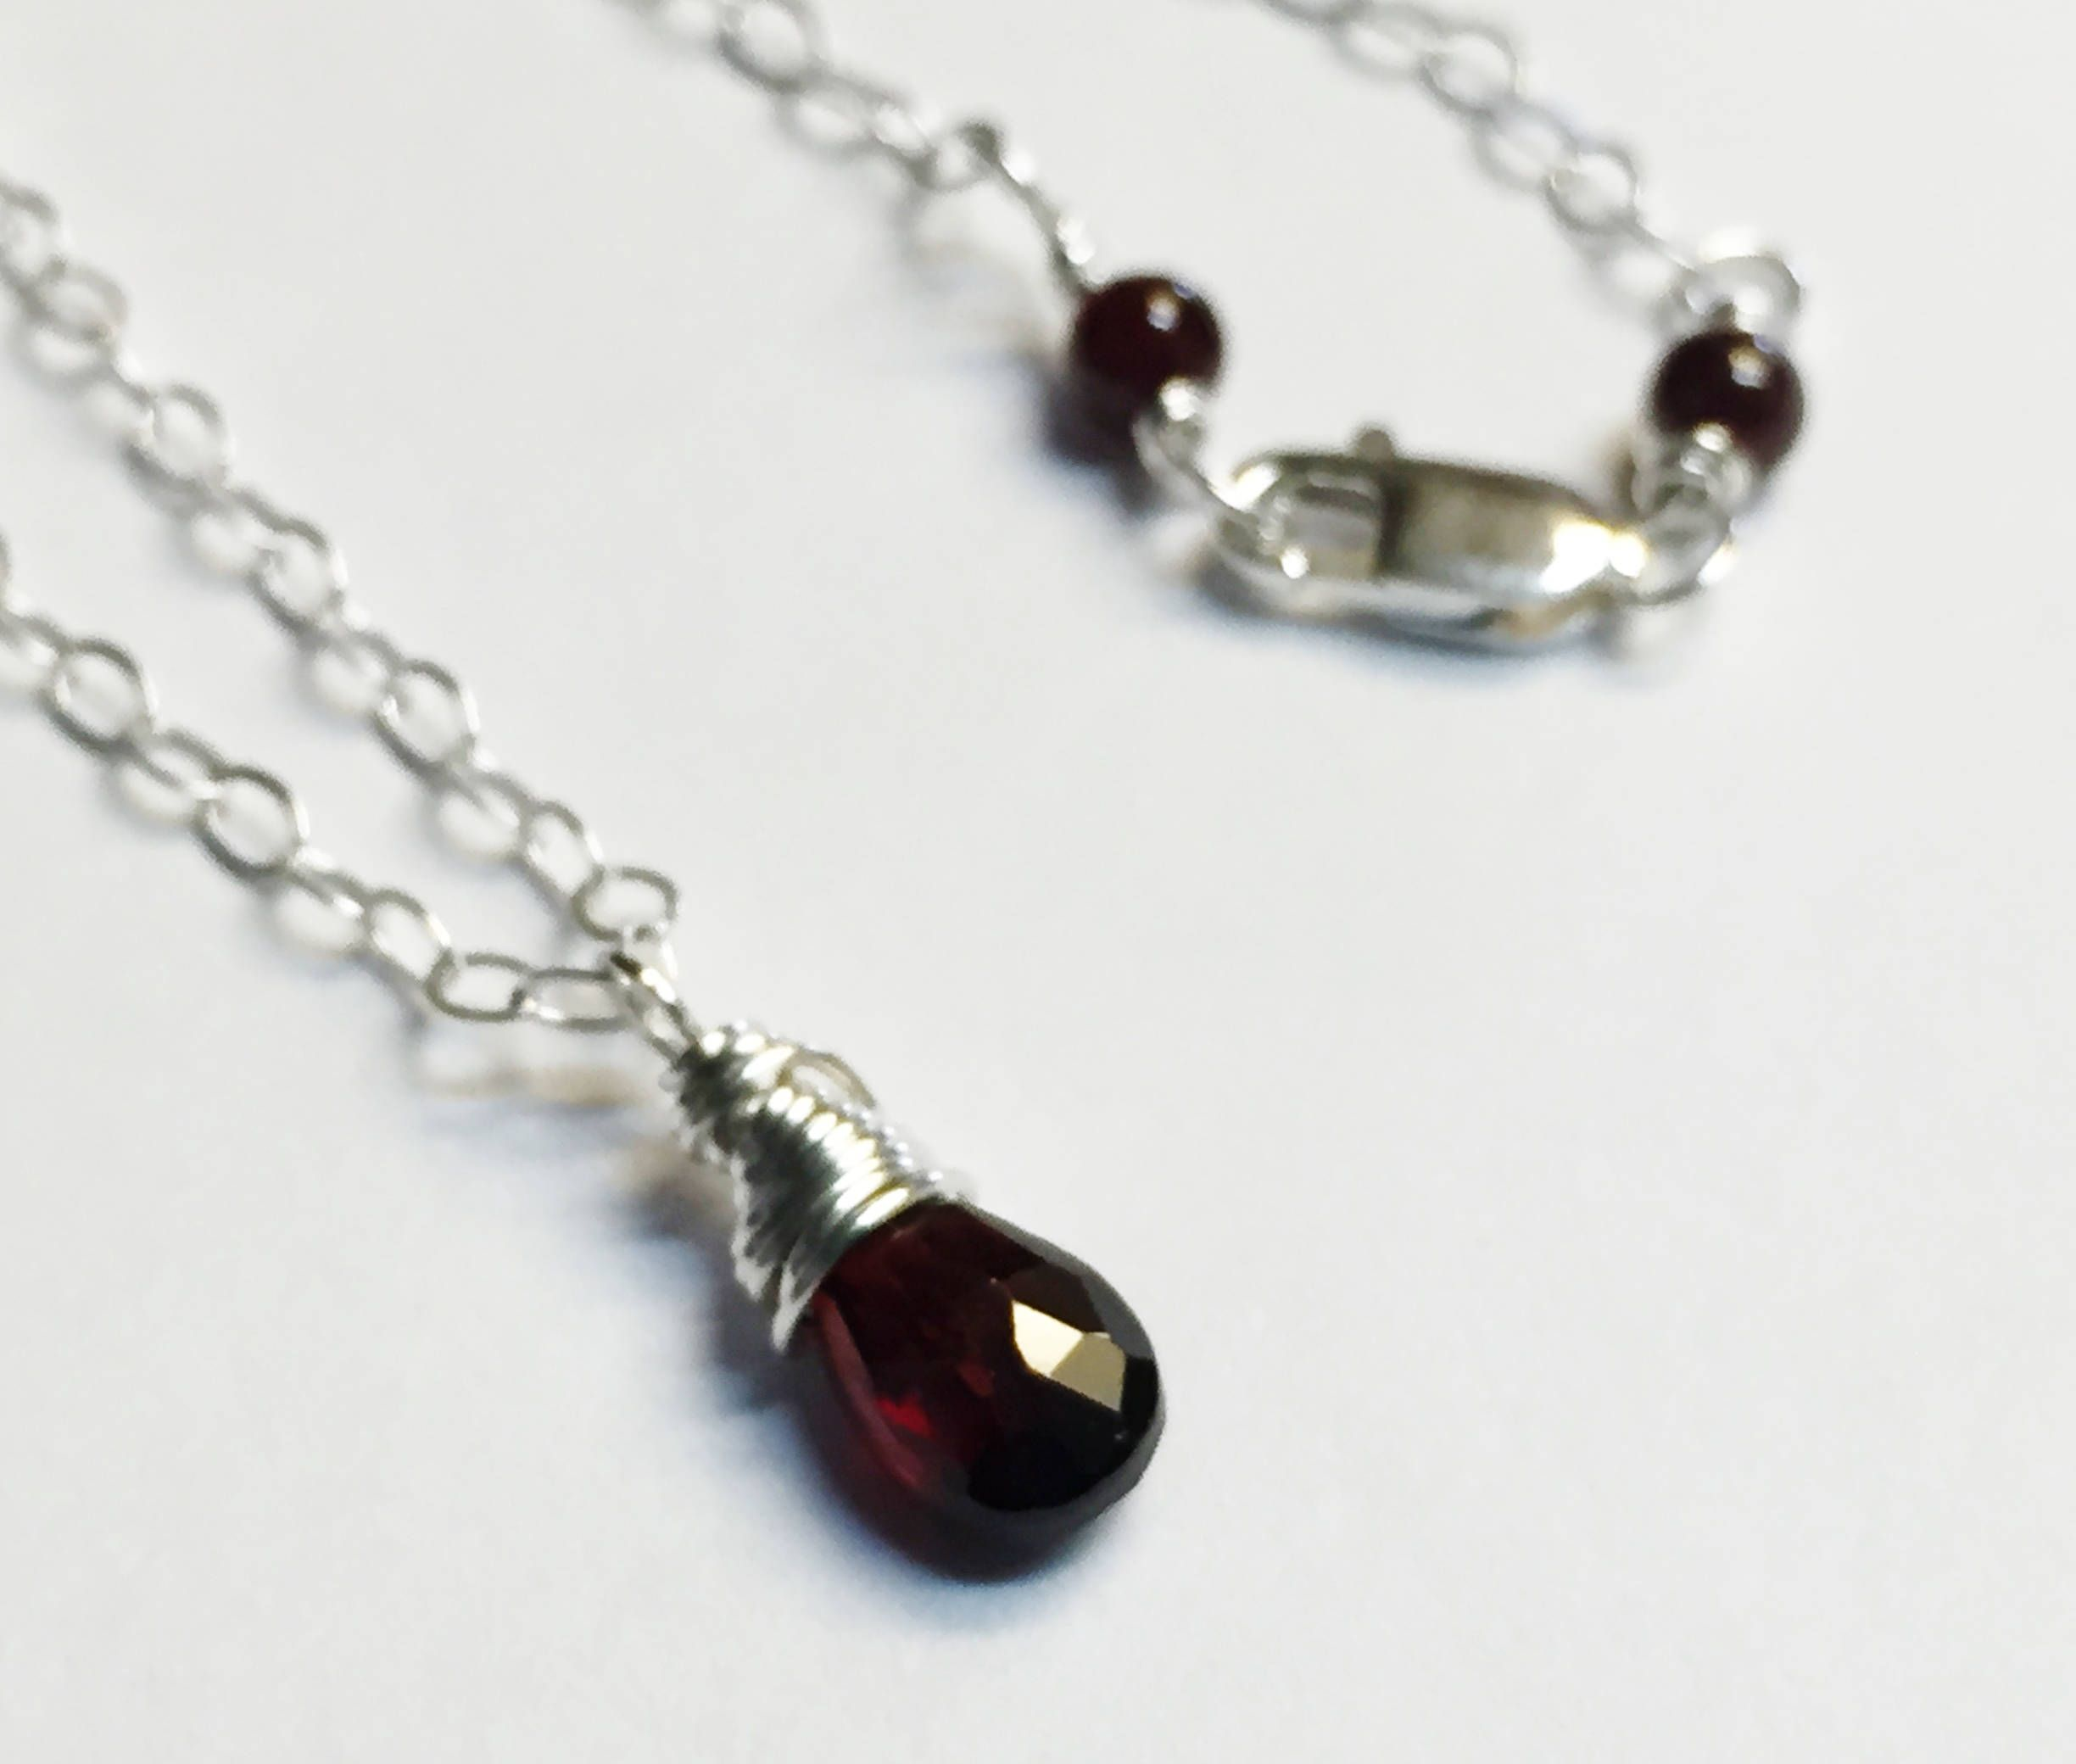 garnet borsheims jewellery earrings january jewelry birthstone